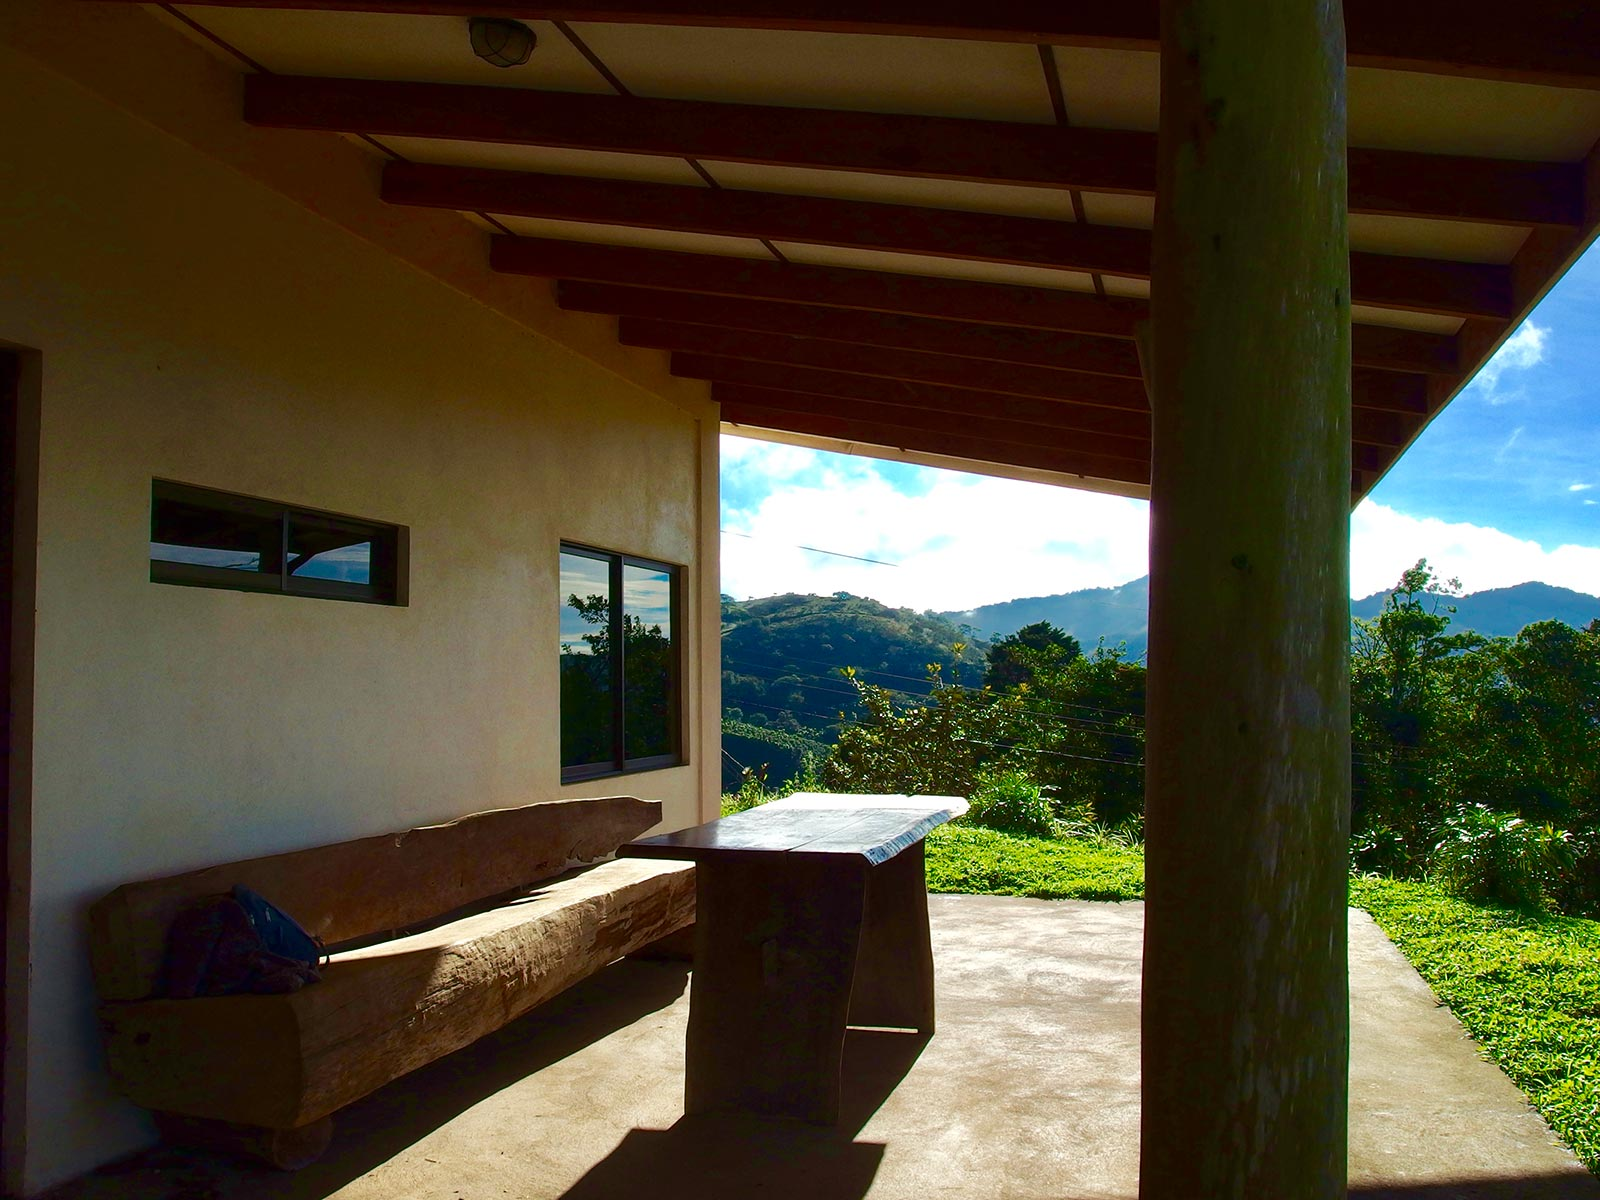 2 br home in San Ramon, houses in San Ramon Costa Rica, Real Estate in Central highlands, new homes for sale in san ramon costa rica, homes under 200k in san ramon costa rica, mountain homes in central valley, spring time weather year round, ocean view homes in costa rica